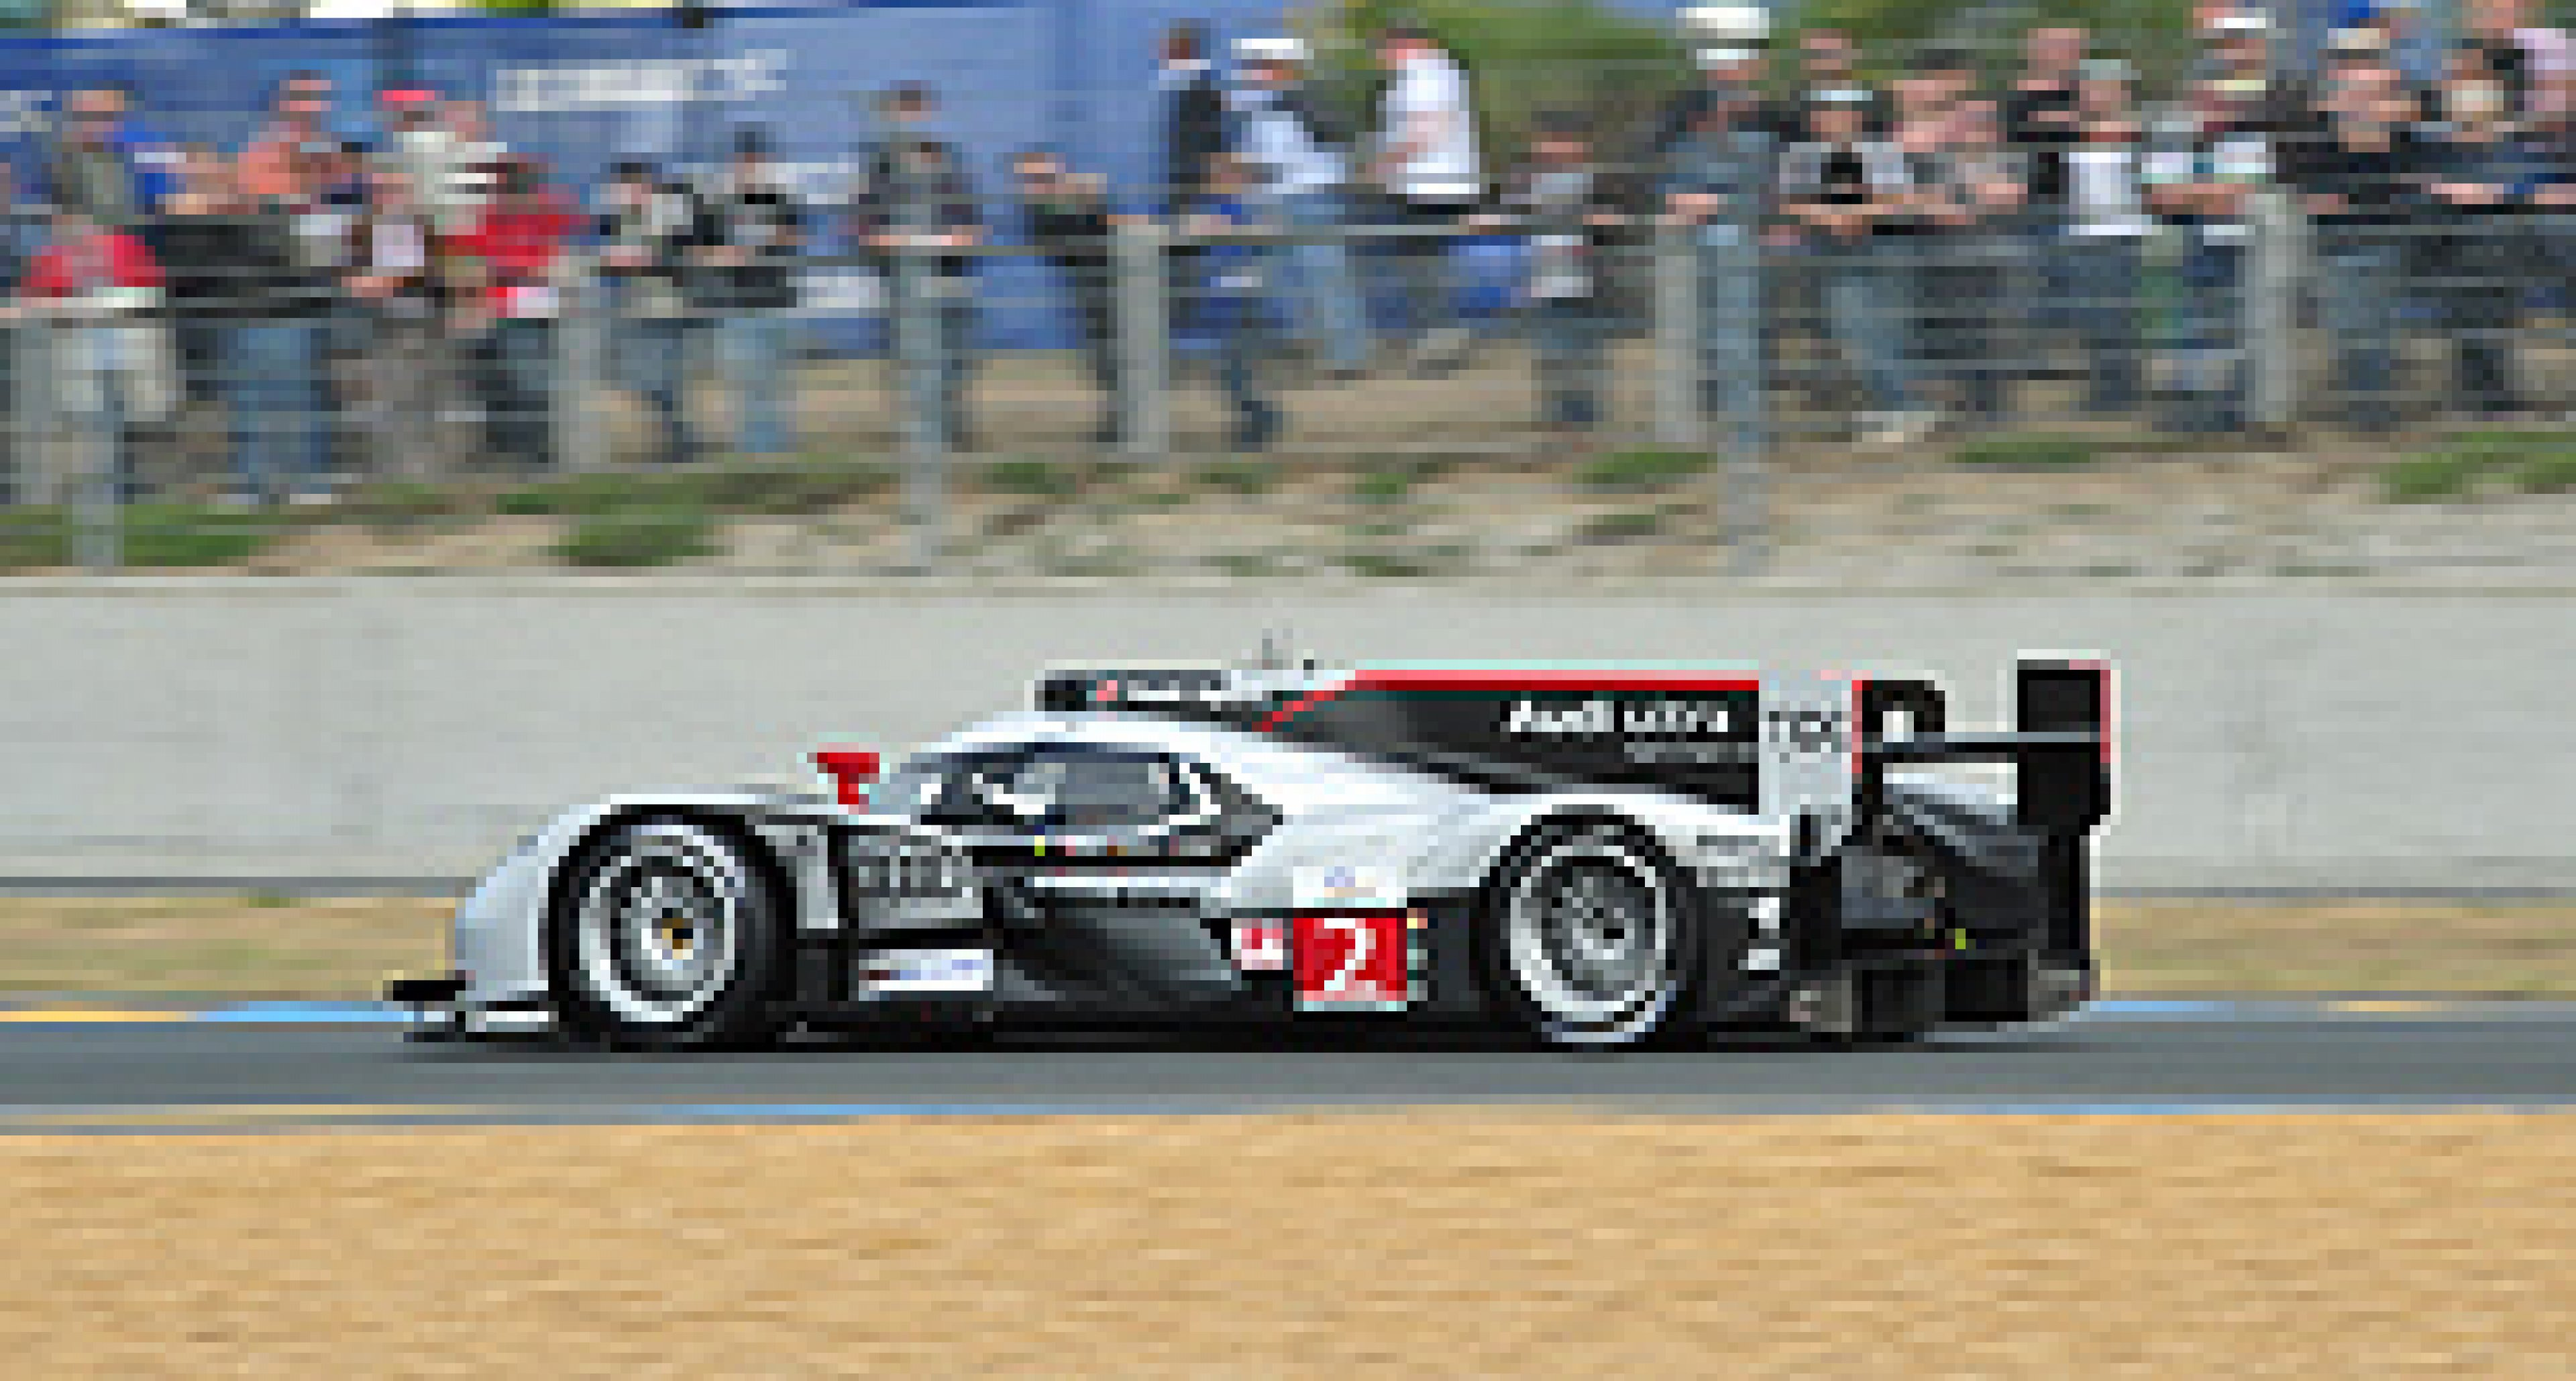 The 2011 Le Mans 24 Hours – Audi victorious in tense finish